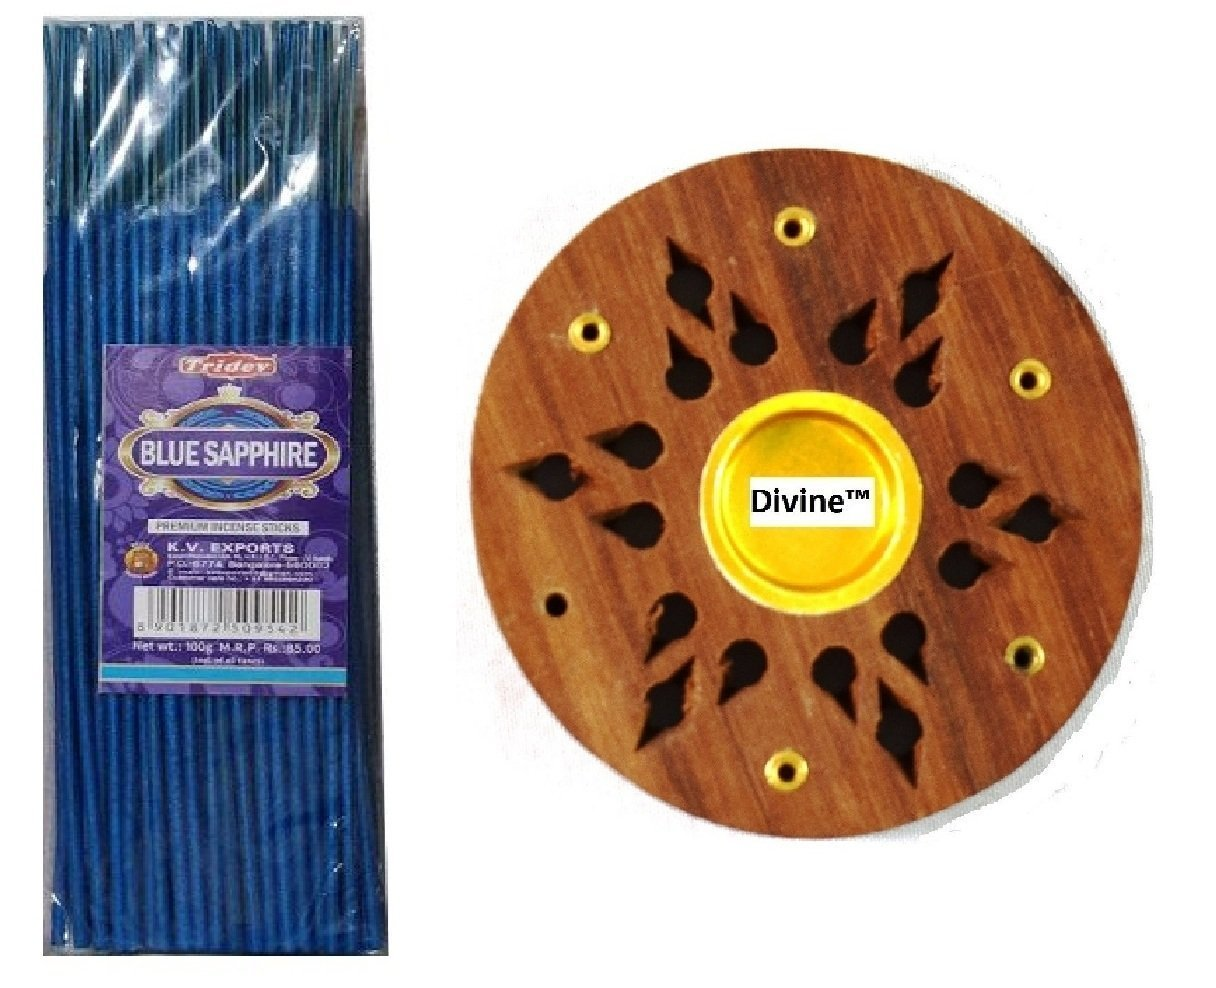 Divine Incense Holder Free With Tridev Blue Sapphire Metallic Coloured Fragranced Premium Incense Sticks Agarbatti 1 KG Pack   10 Packs of 100 Grams   Export Quality by Divine